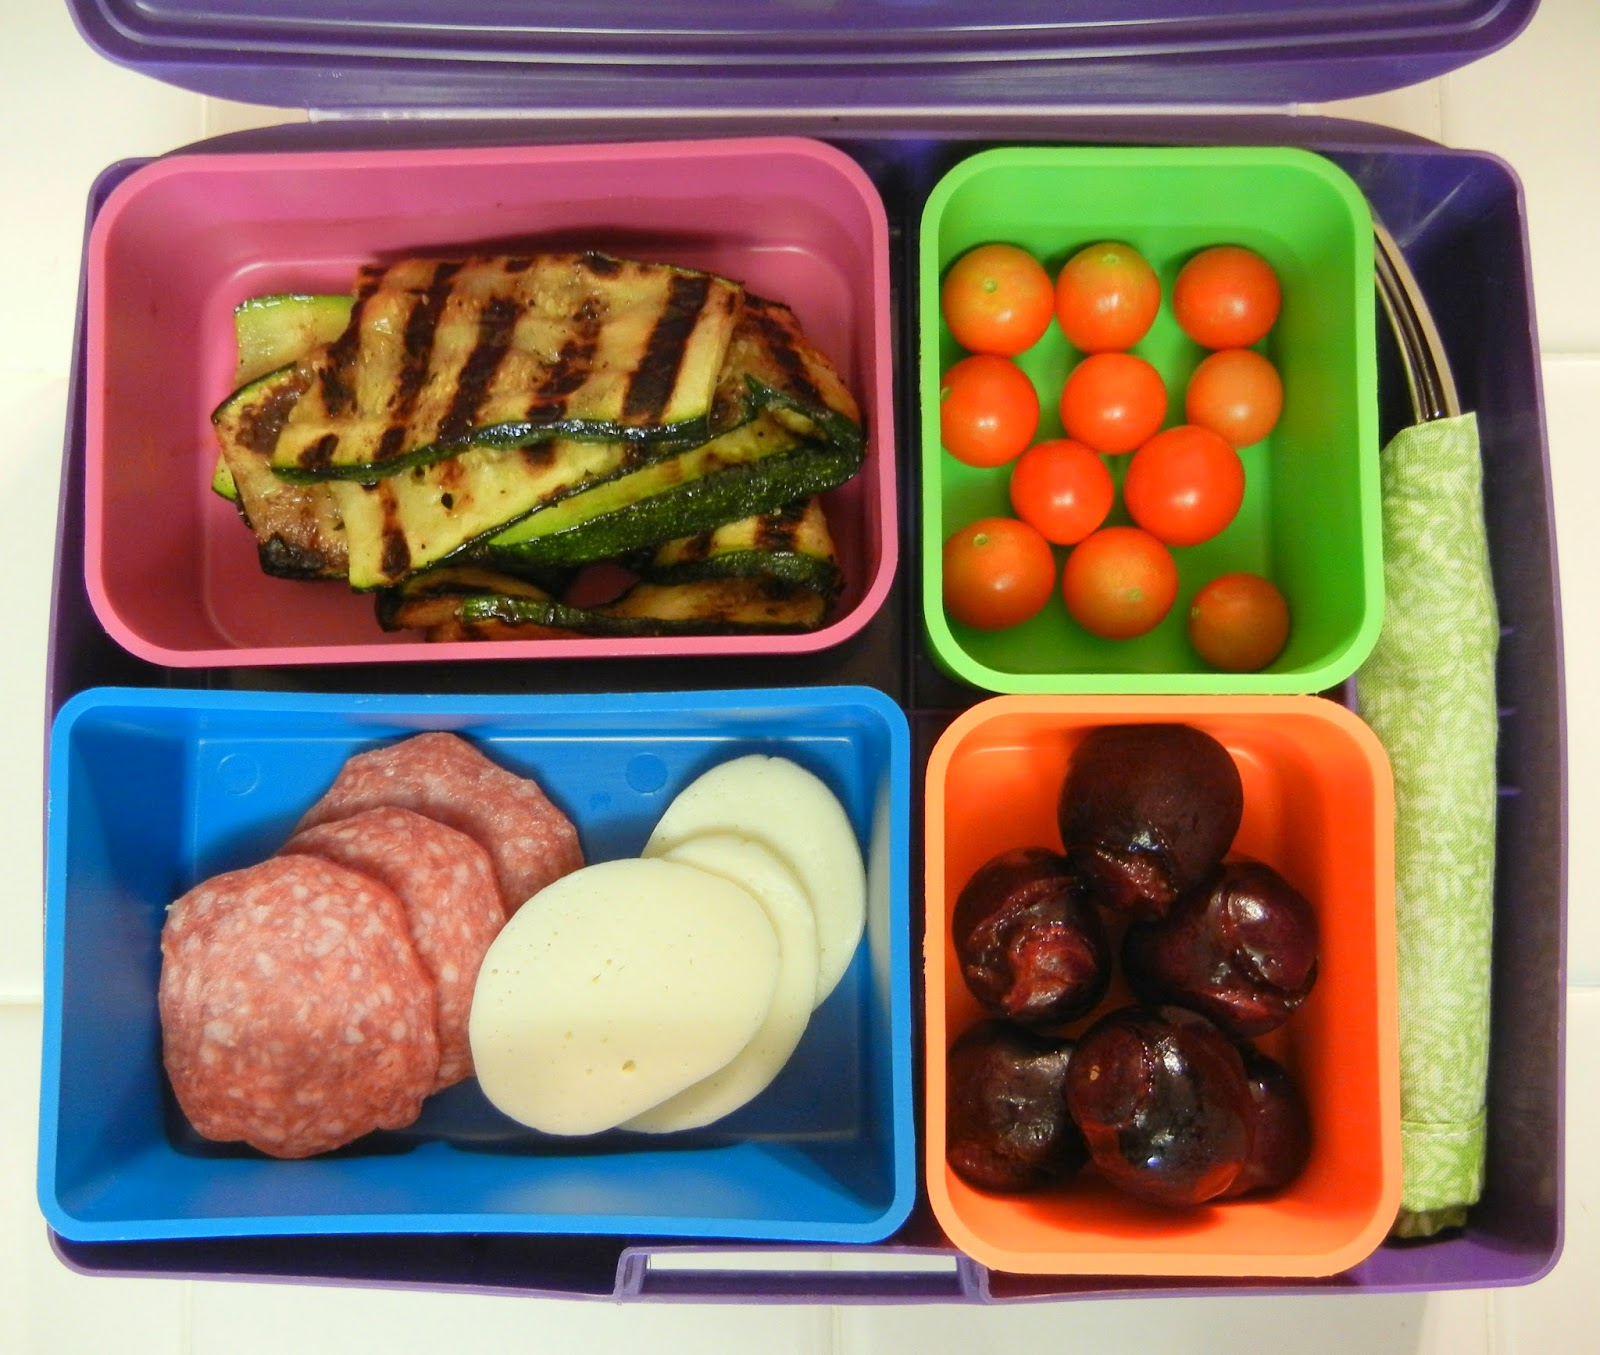 Bento+Box+Italian+Eggface Weight Loss Recipes July is National Picnic Month! A Bevy of Bento Box Lunches to Celebrate.